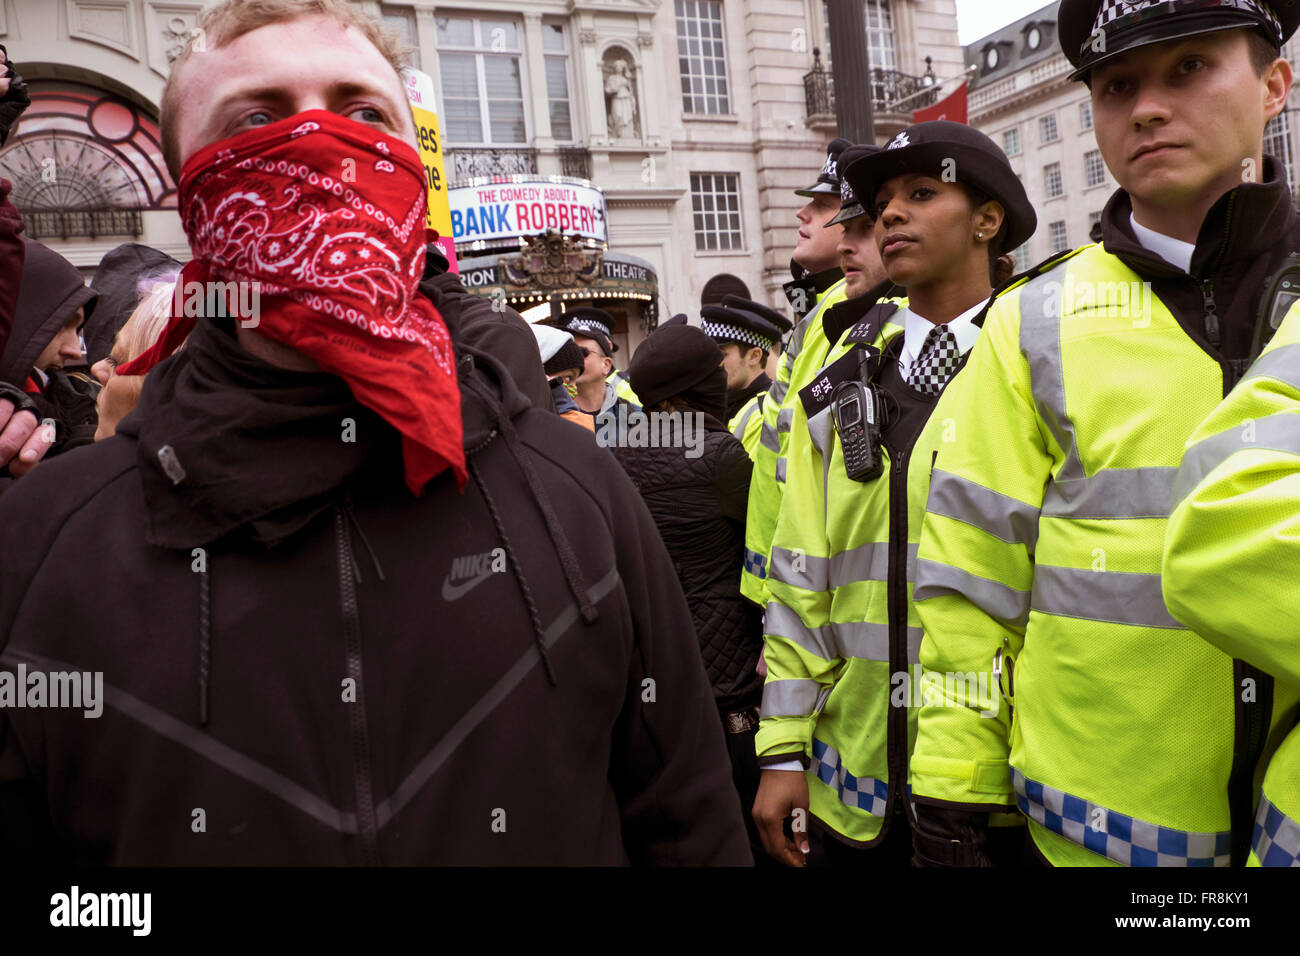 Stand up to Racism march welcoming Refugees & protesting against Islamophobia & racial prejudice London - Stock Image